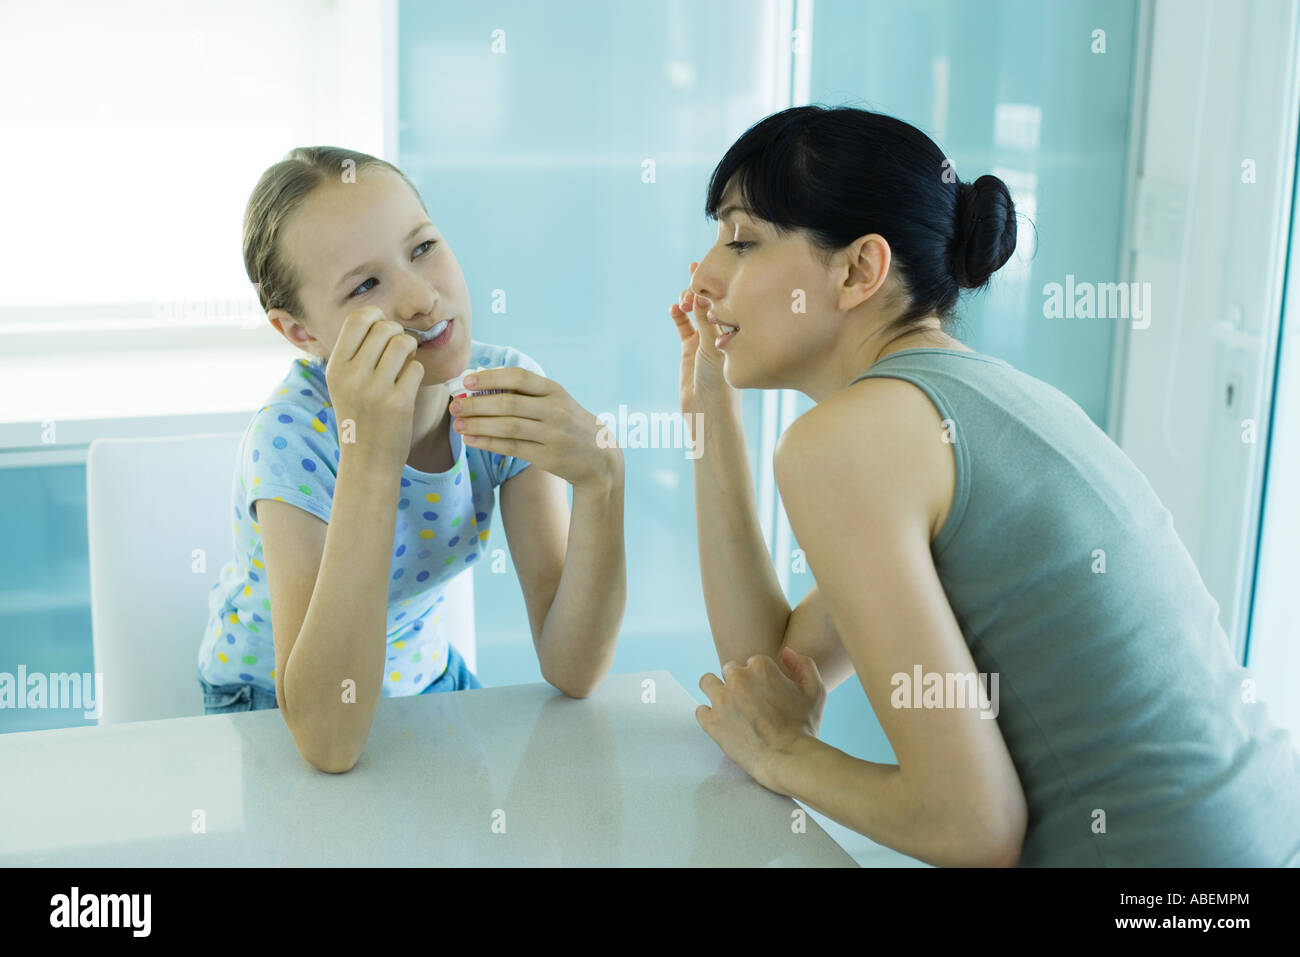 Girl eating ice cream dessert, woman leaning toward girl enviously - Stock Image